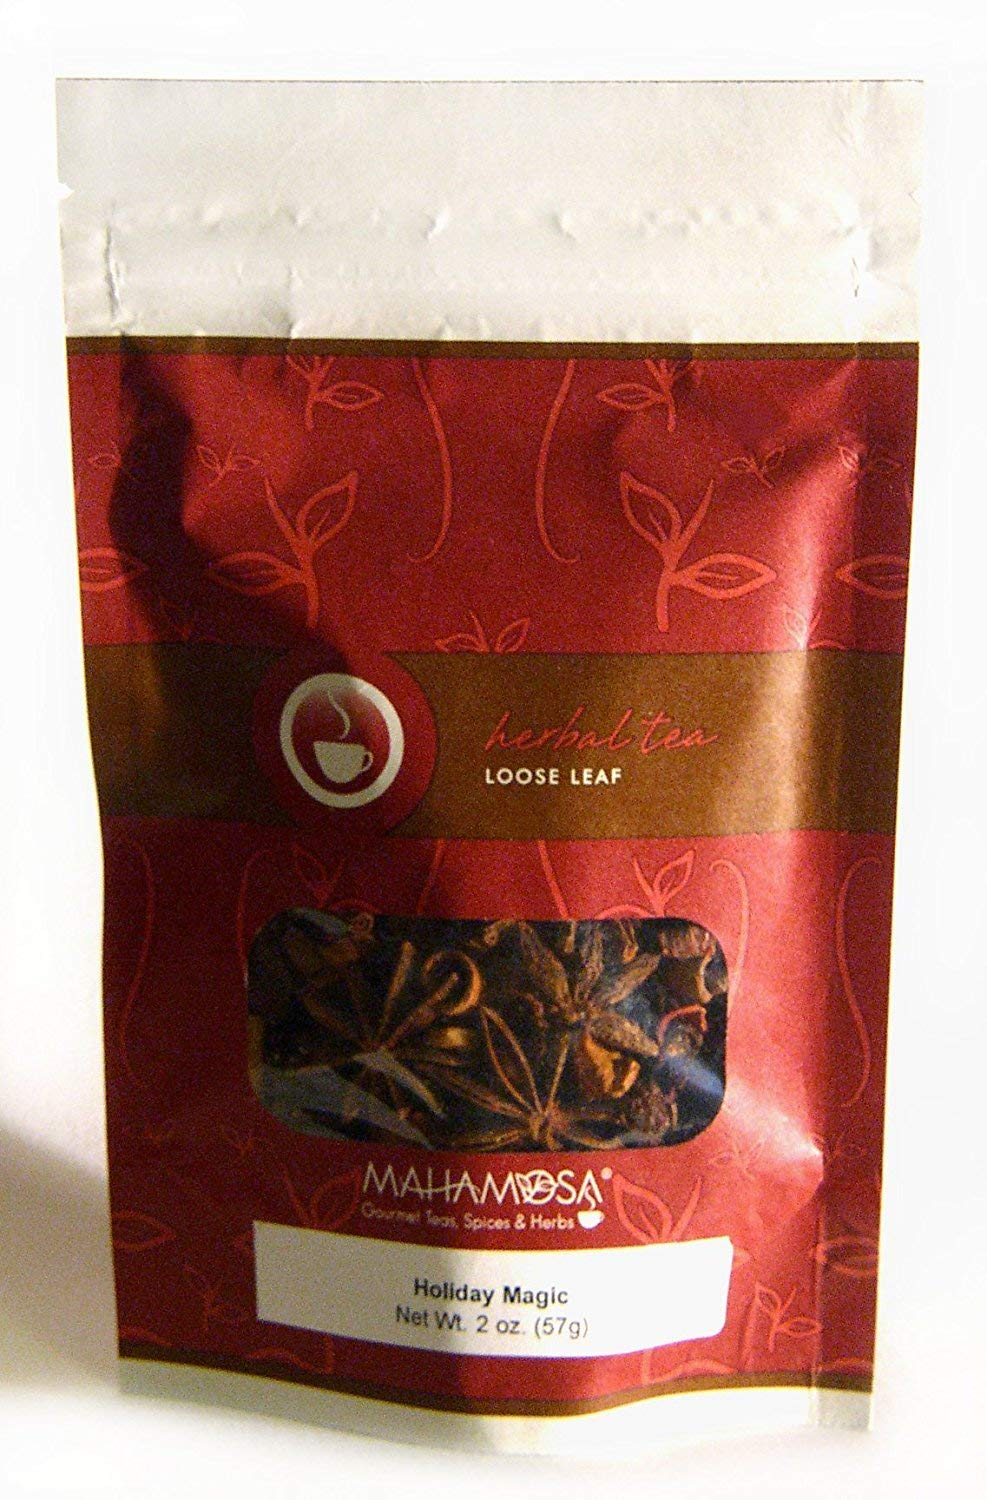 Mahamosa Holiday Magic Tea 2 oz, Herbal Fruit Tea Blend Loose Leaf (Looseleaf)(with apple pieces, rose hip peel, hibiscus blossoms, cinnamon rods, star anise seed, ginger bits, pink peppercorns, flavoring, freeze-dried strawberry slices, cloves)